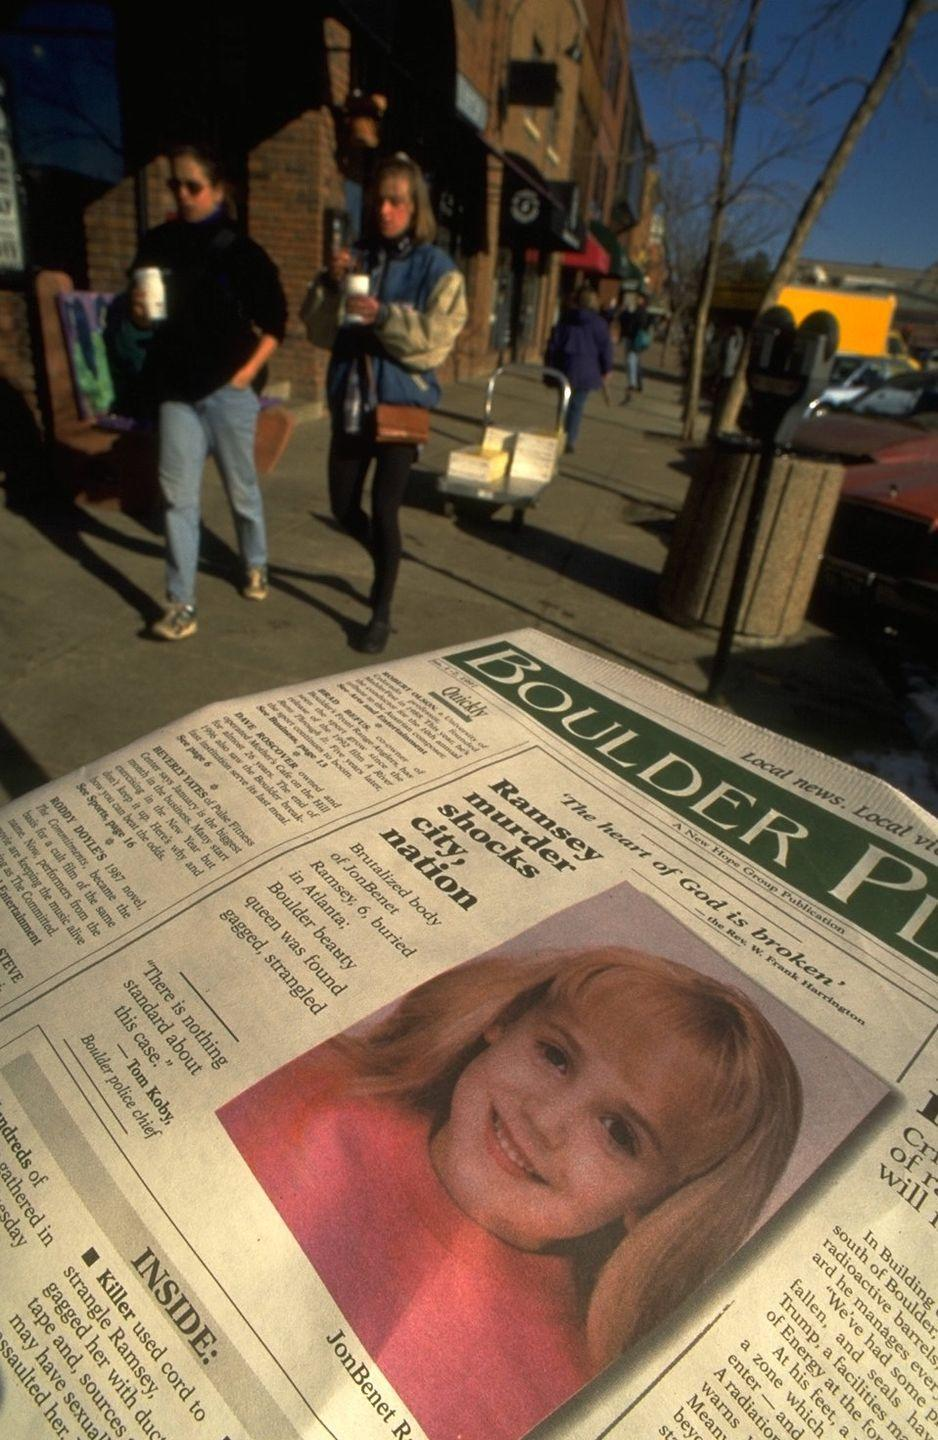 "<p>On the early morning of December 26, 1996, Patsy Ramsey uncovered a ransom note seeking $118,000 for her 6-year-old daughter's safe return. She called the police, and shortly thereafter the body of her young daughter, JonBenét, was discovered <a href=""https://www.cnn.com/2013/08/29/us/jonbenet-ramsey-murder-fast-facts/index.html"" rel=""nofollow noopener"" target=""_blank"" data-ylk=""slk:lifeless on the basement floor"" class=""link rapid-noclick-resp"">lifeless on the basement floor</a> of their Boulder, Colorado home. The young pageant star's skull was fractured, and duct tape was placed over her mouth. (continued)</p>"